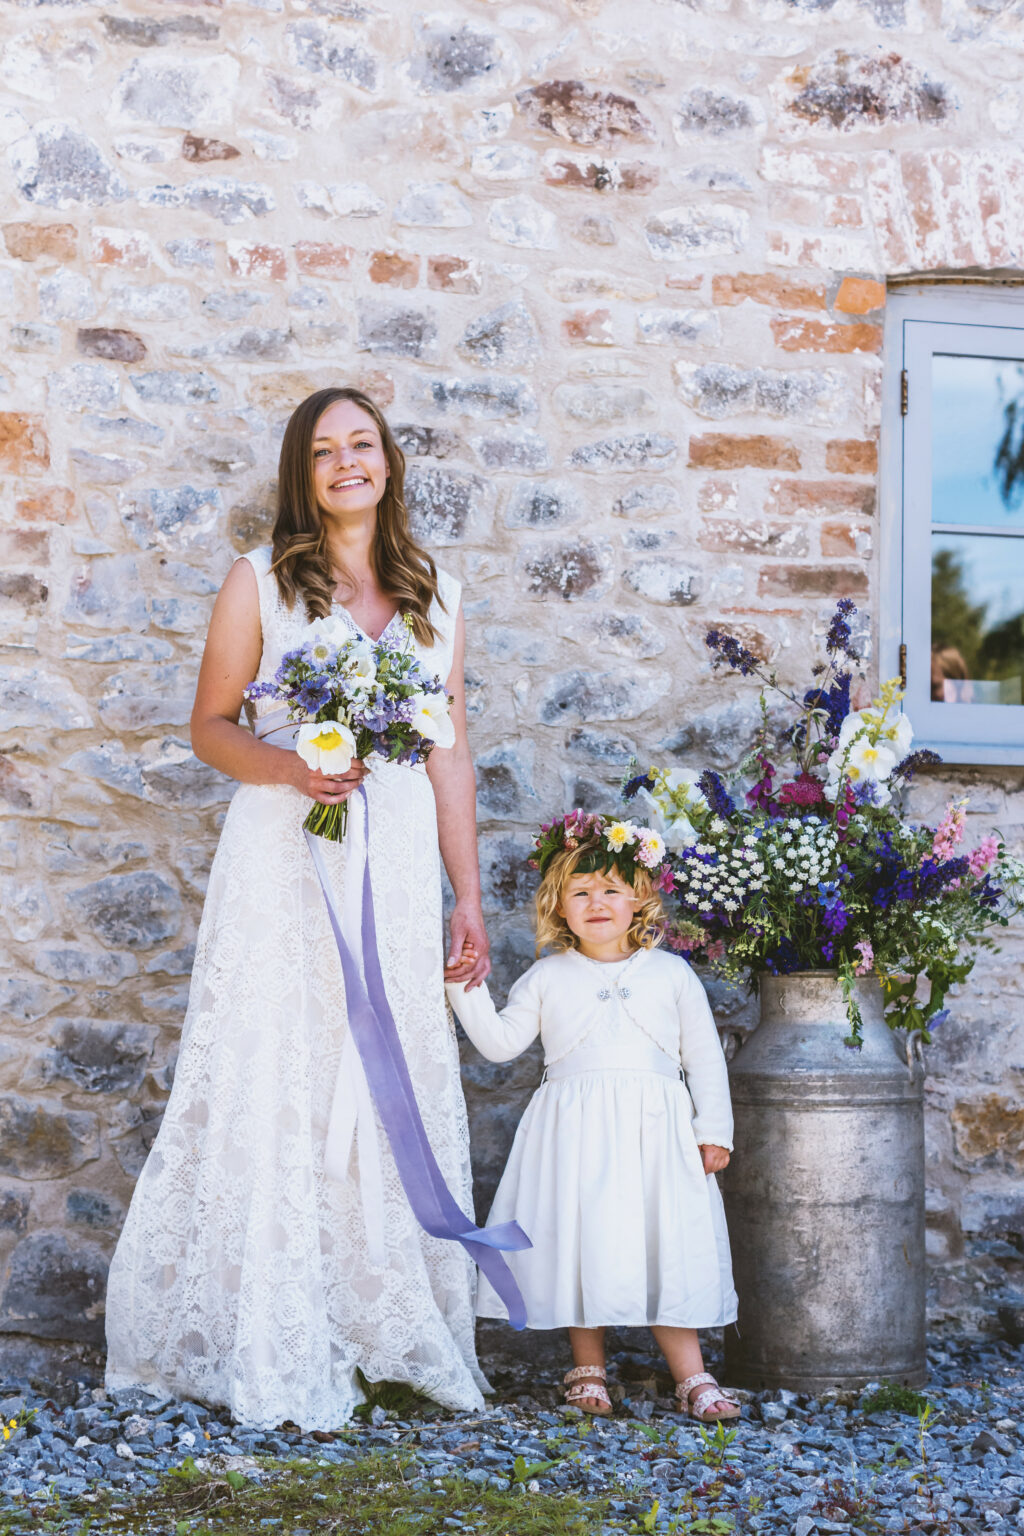 A bride and flower girl with British grown wedding flowers by The Floral Potager stand smiling against a rustic brick wall